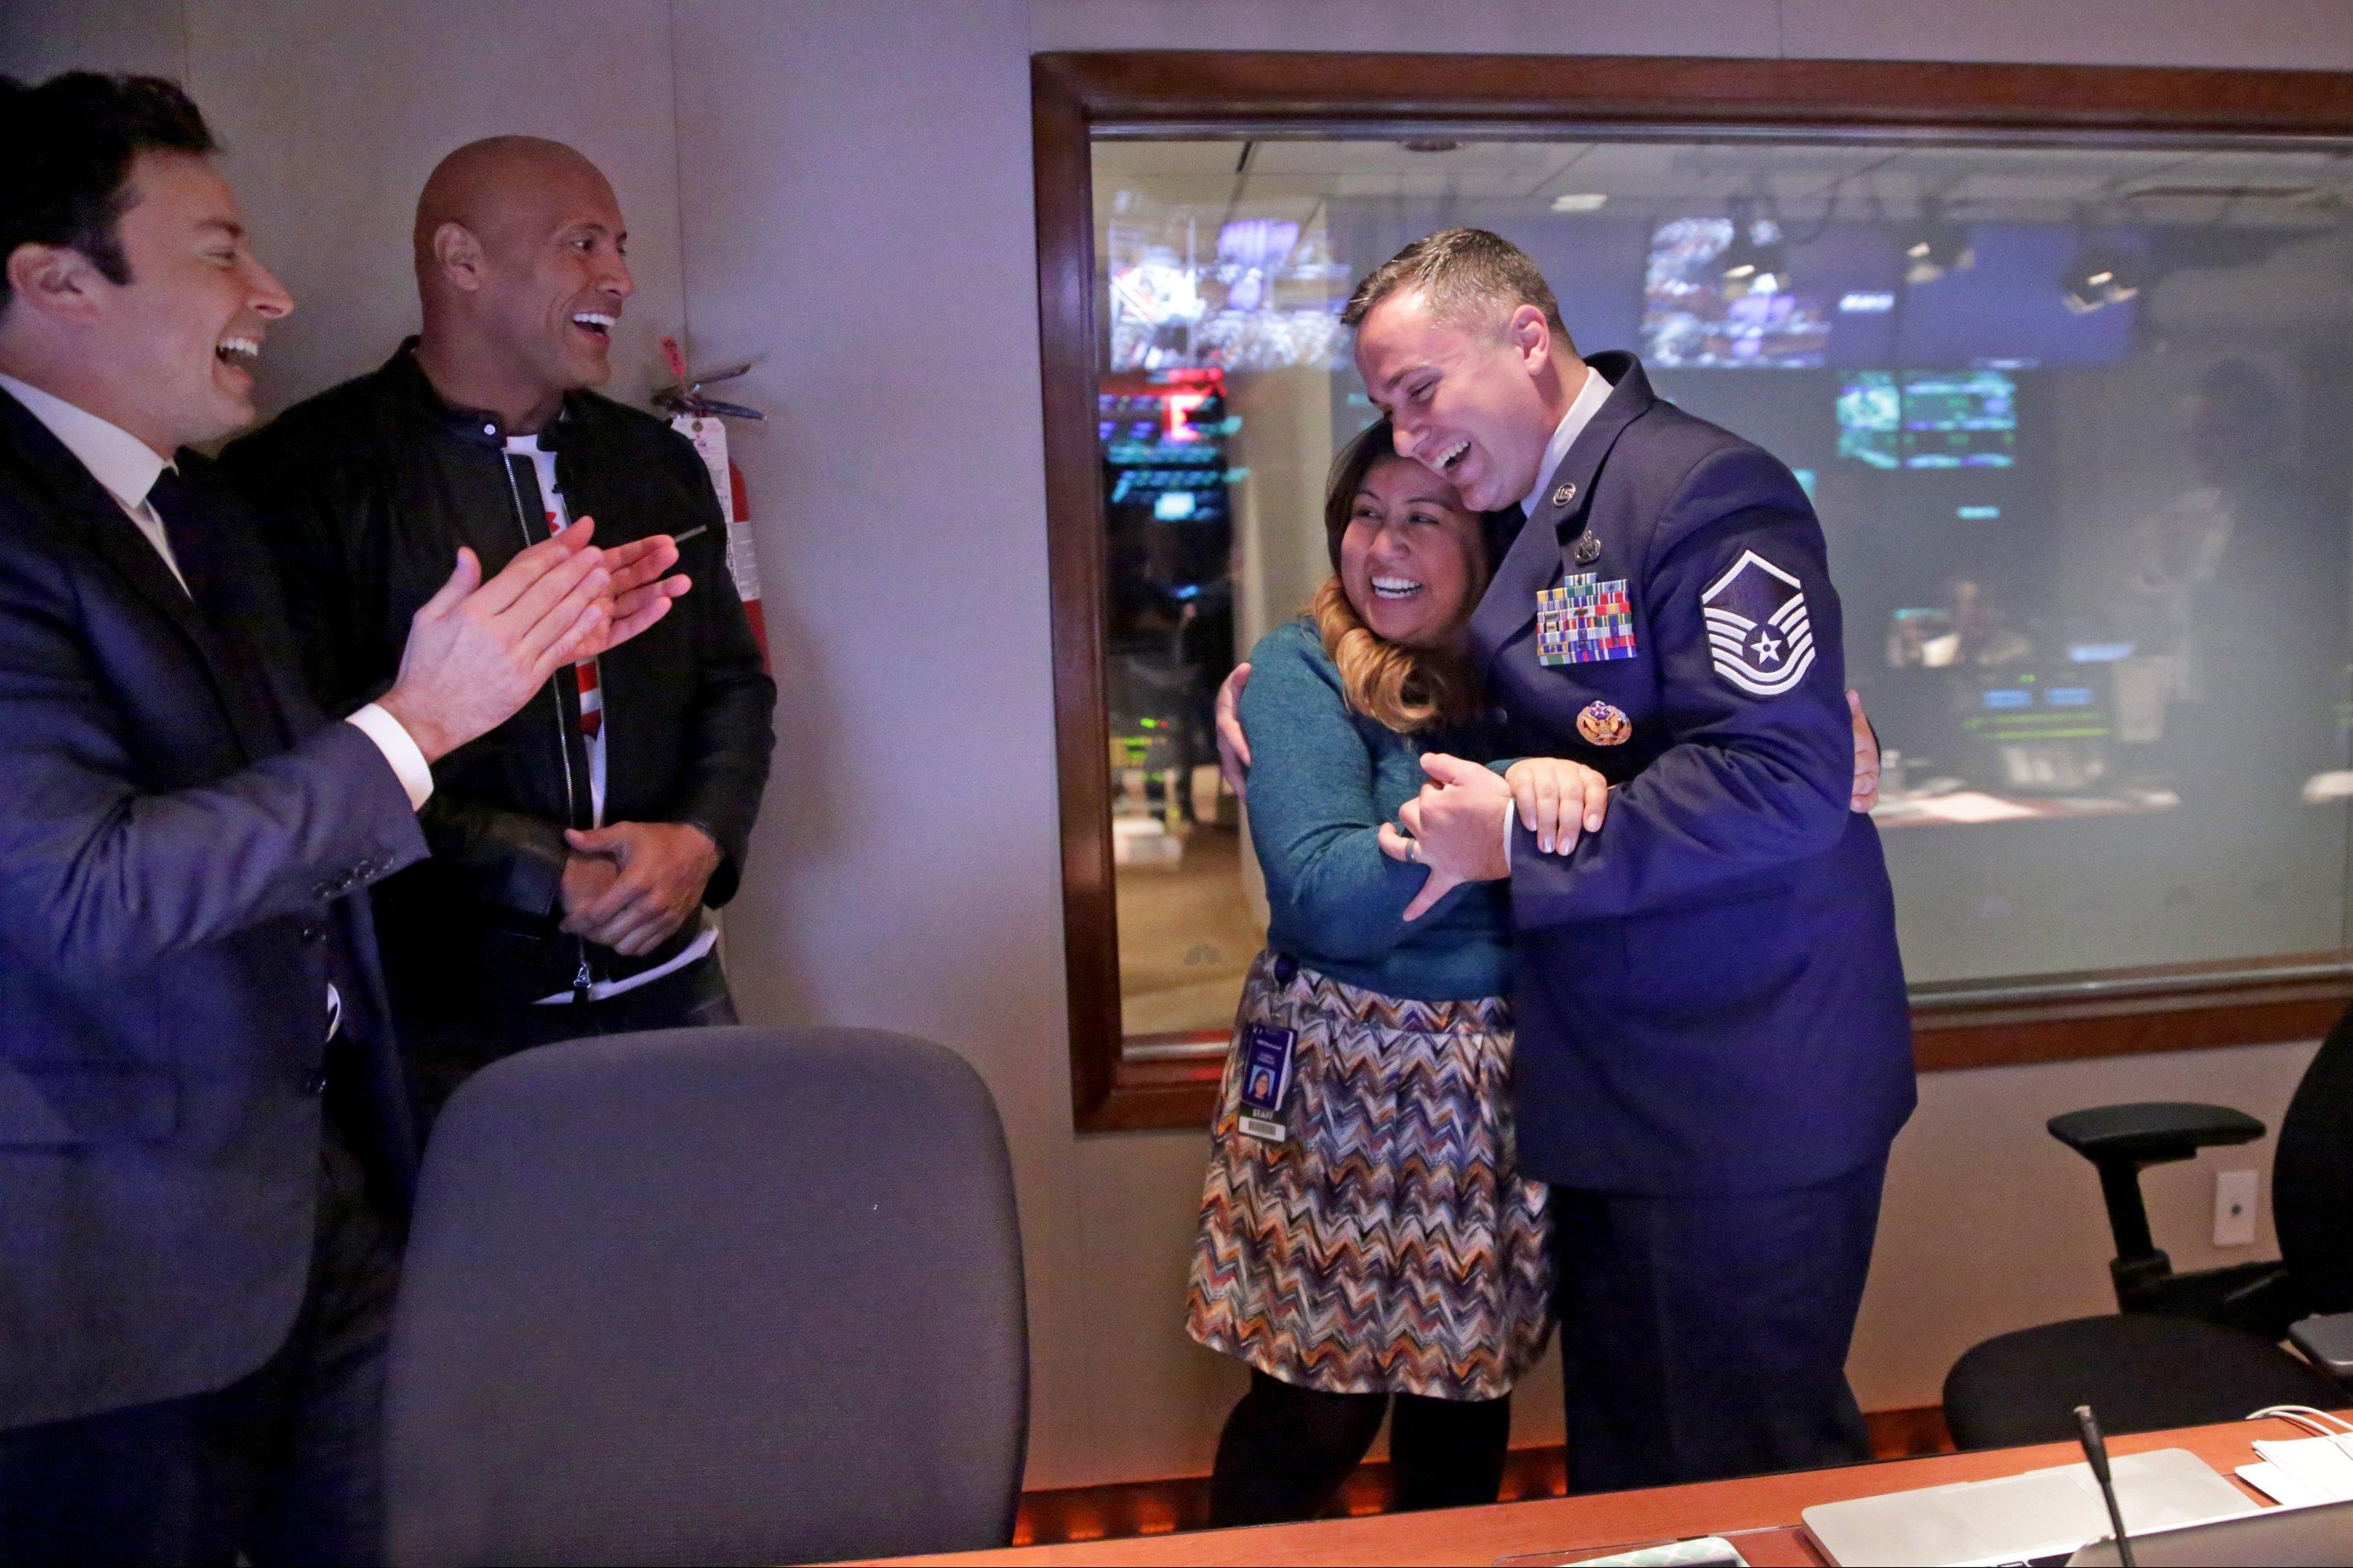 Watch Jimmy Fallon and Dwayne Johnson's Moving Surprise for a Military Family